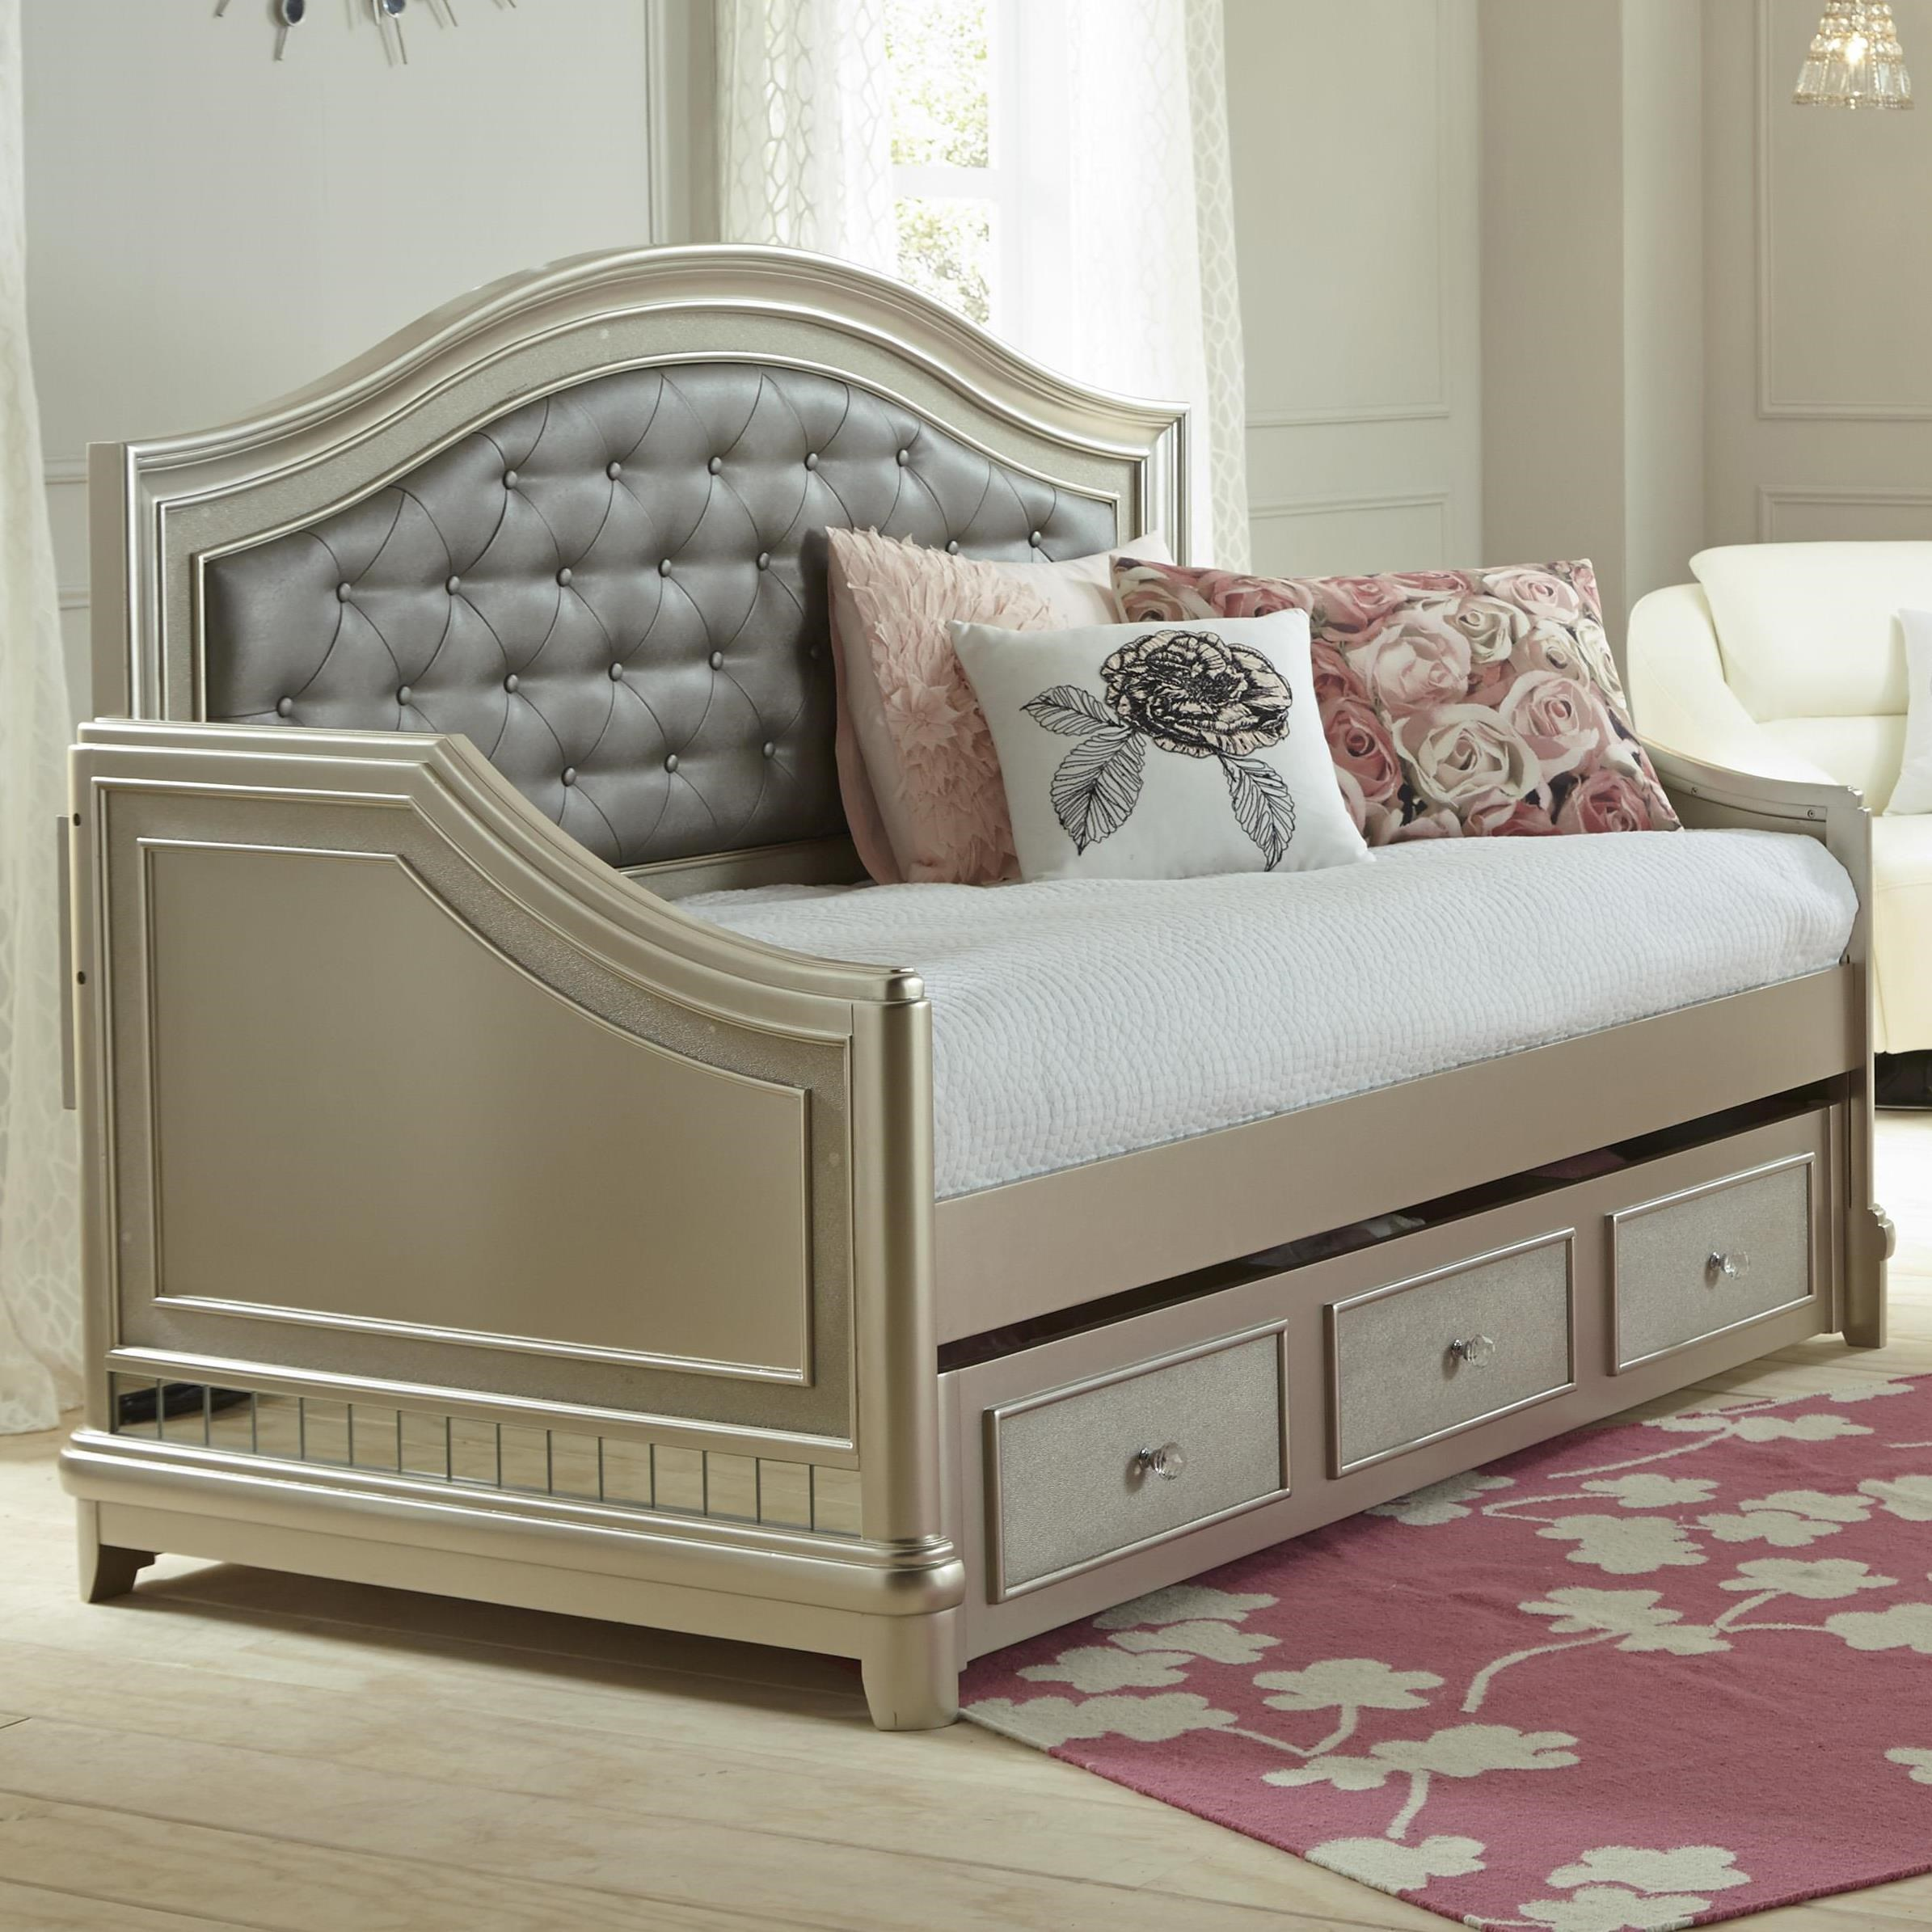 samuel lawrence lil diva tufted daybed w trundle darvin furniture daybeds - Samuel Lawrence Furniture